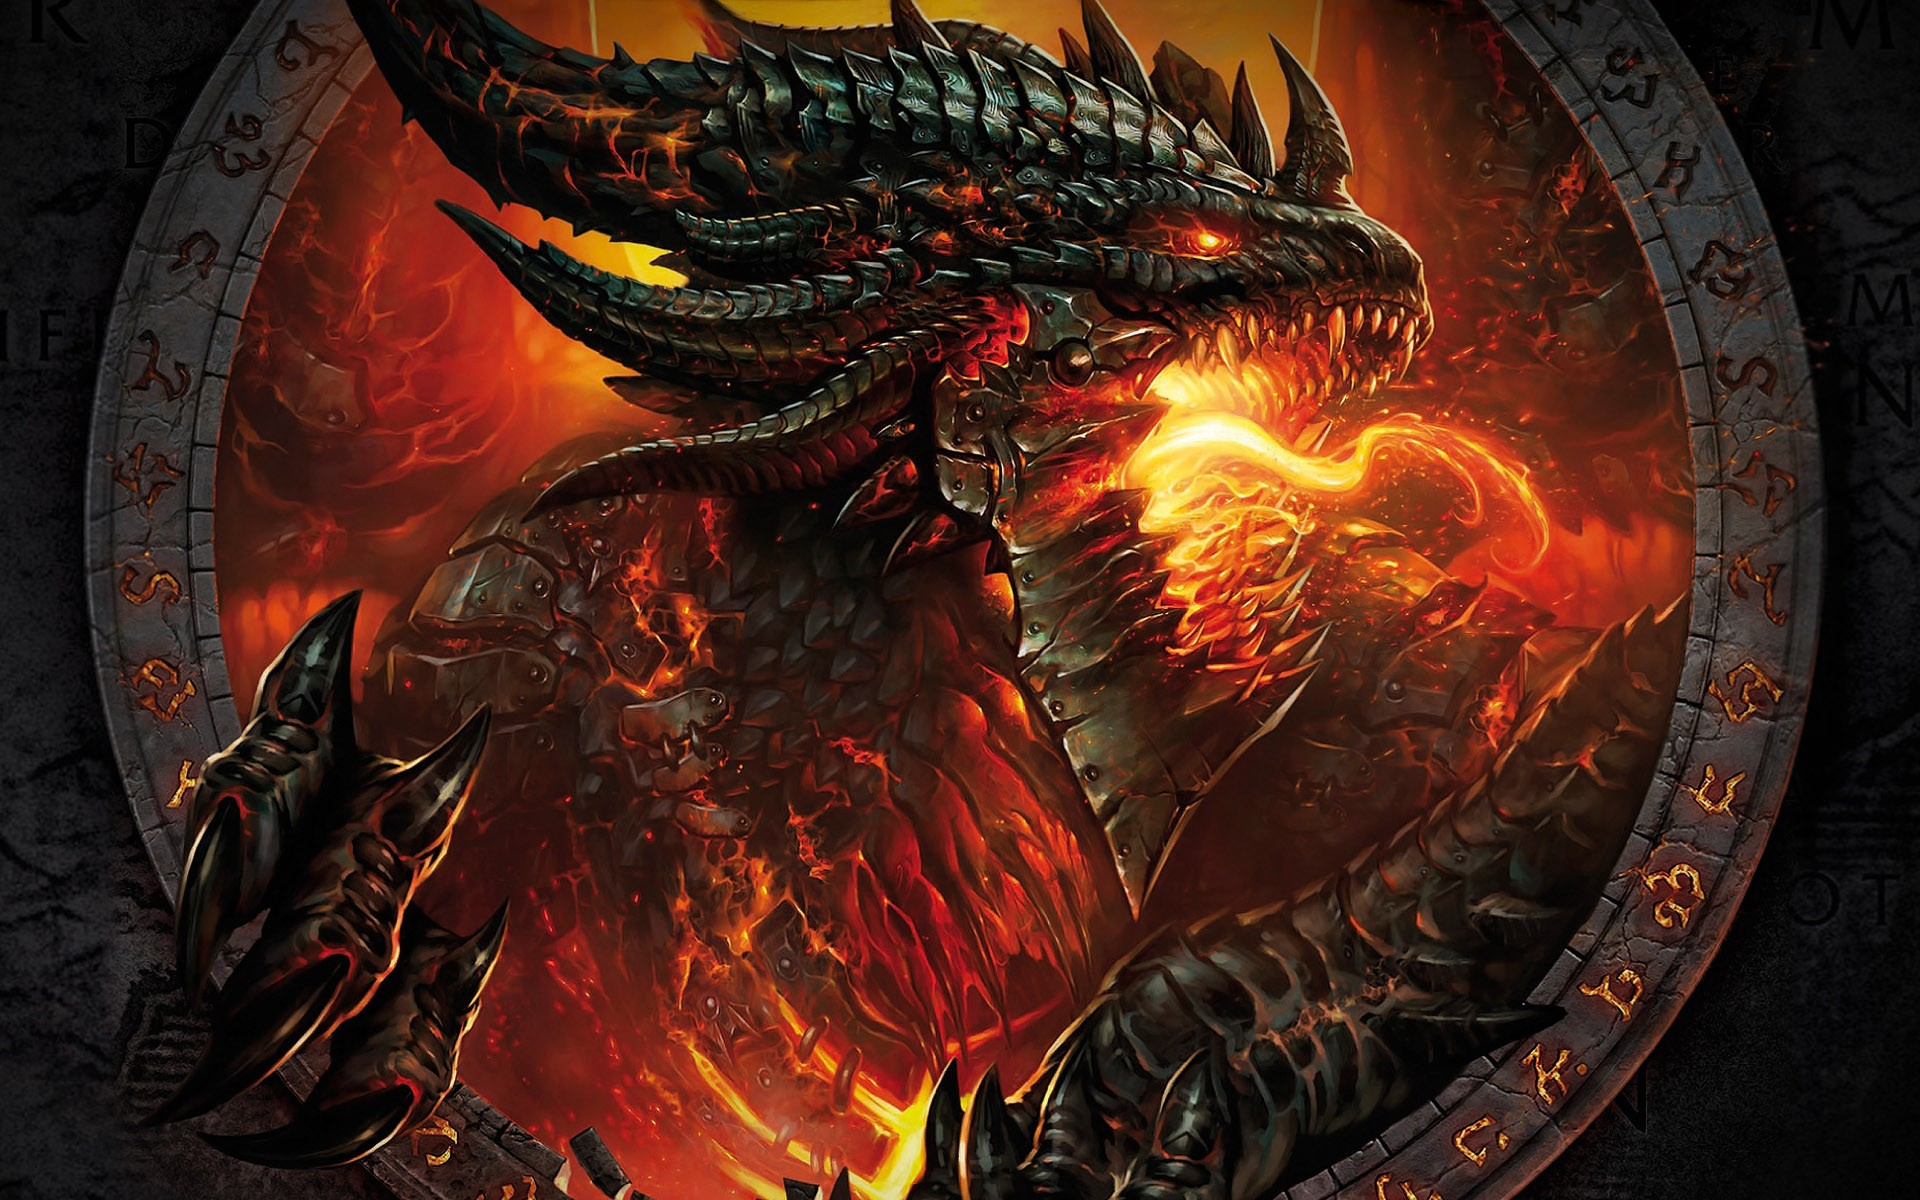 Download Wallpaper Screensaver with the dragon of WoW Cataclysm 1920x1200